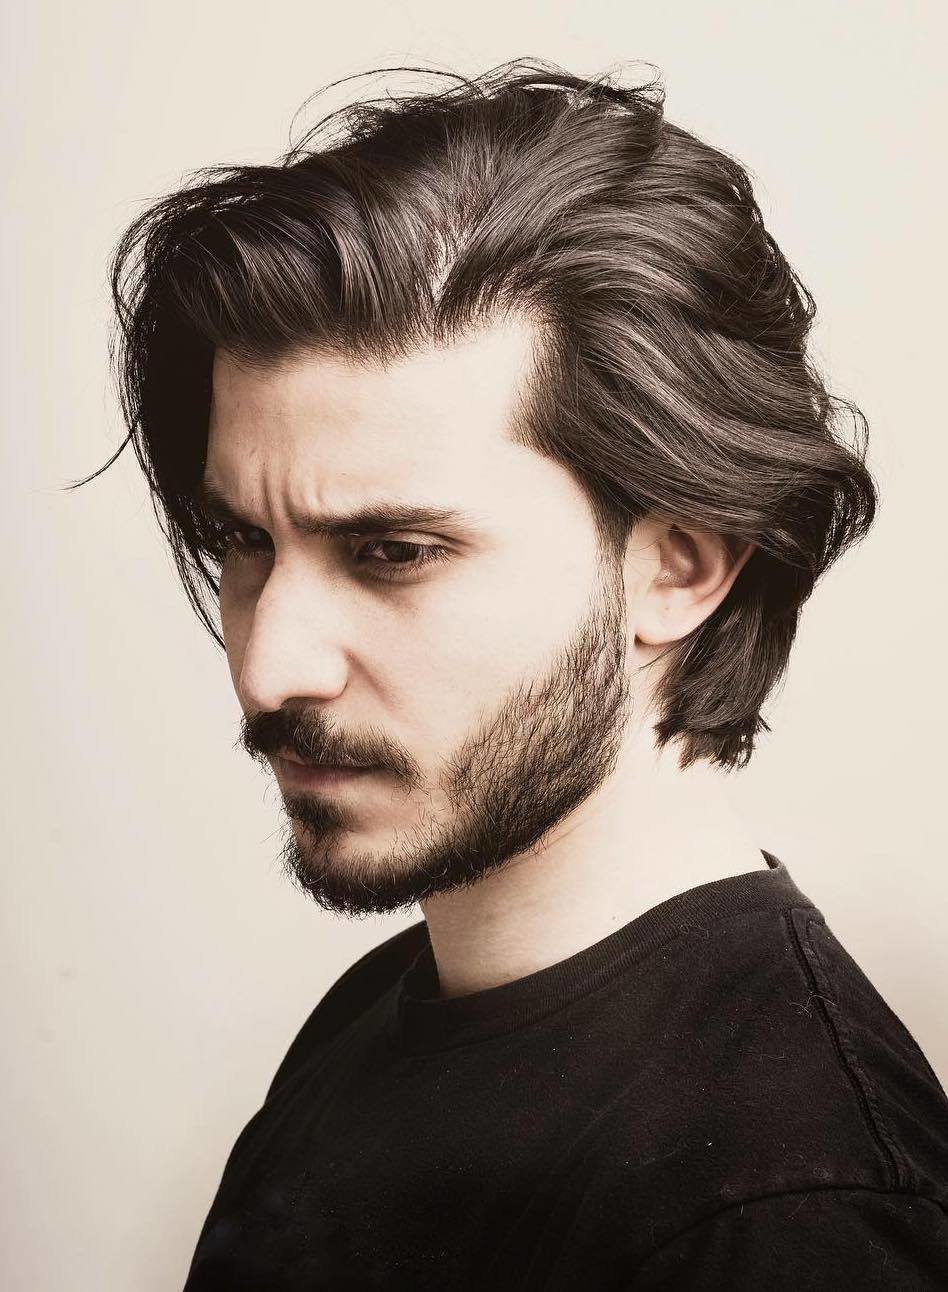 The Best Handsome And Cool – The Latest Men S Hairstyles For 2019 Pictures